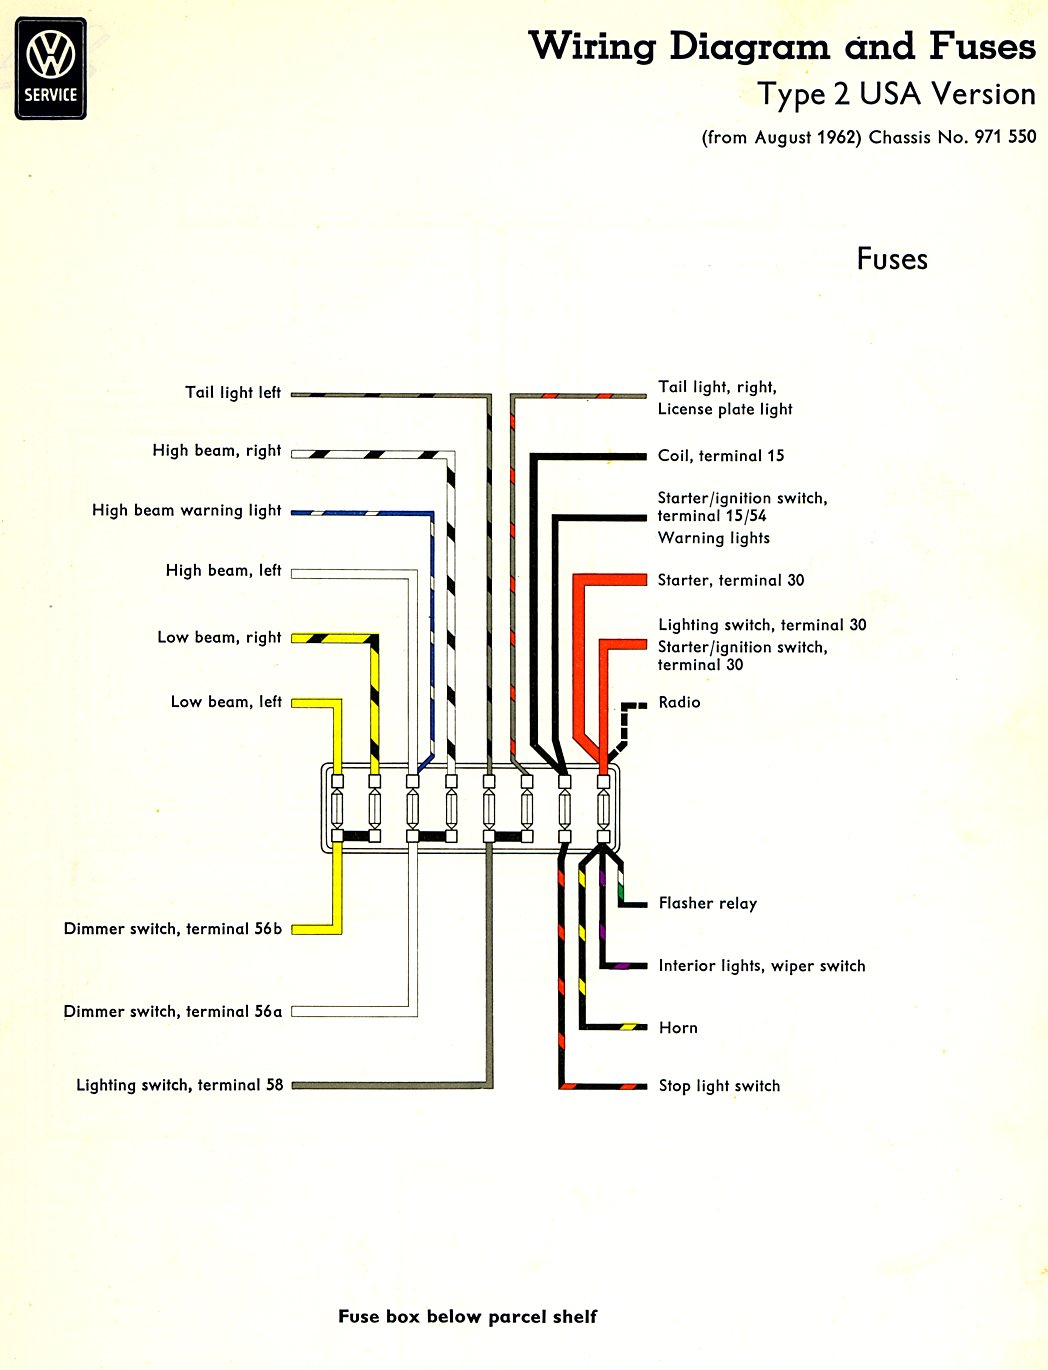 turn signal wiring diagram 1971 vw